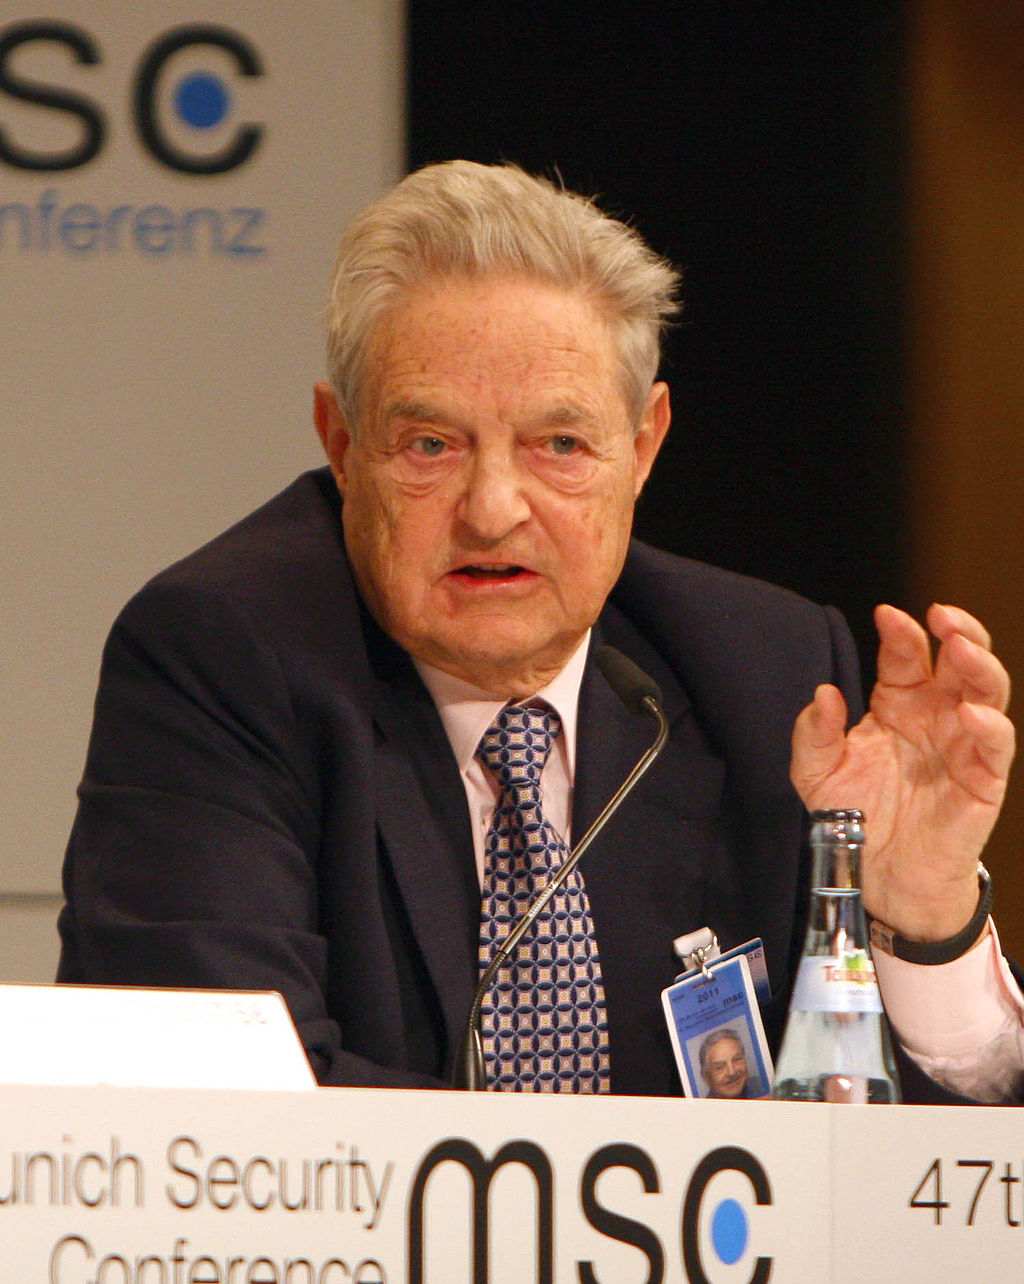 1024px-George_Soros_47th_Munich_Security_Conference_2011_crop